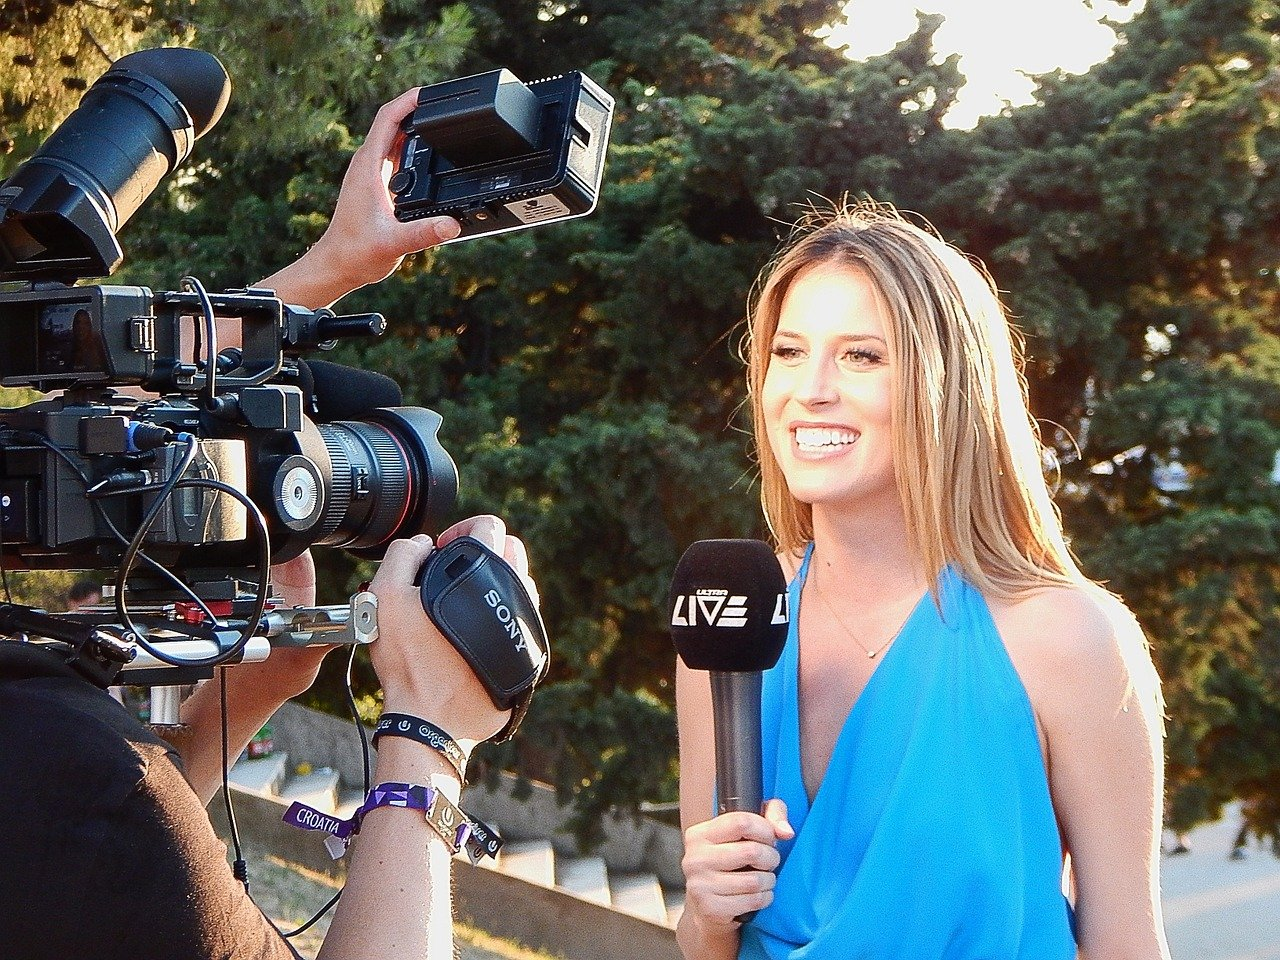 EXPERT INSIGHTS: HOW, WHEN AND IF TO GO AFTER MEDIA COVERAGE